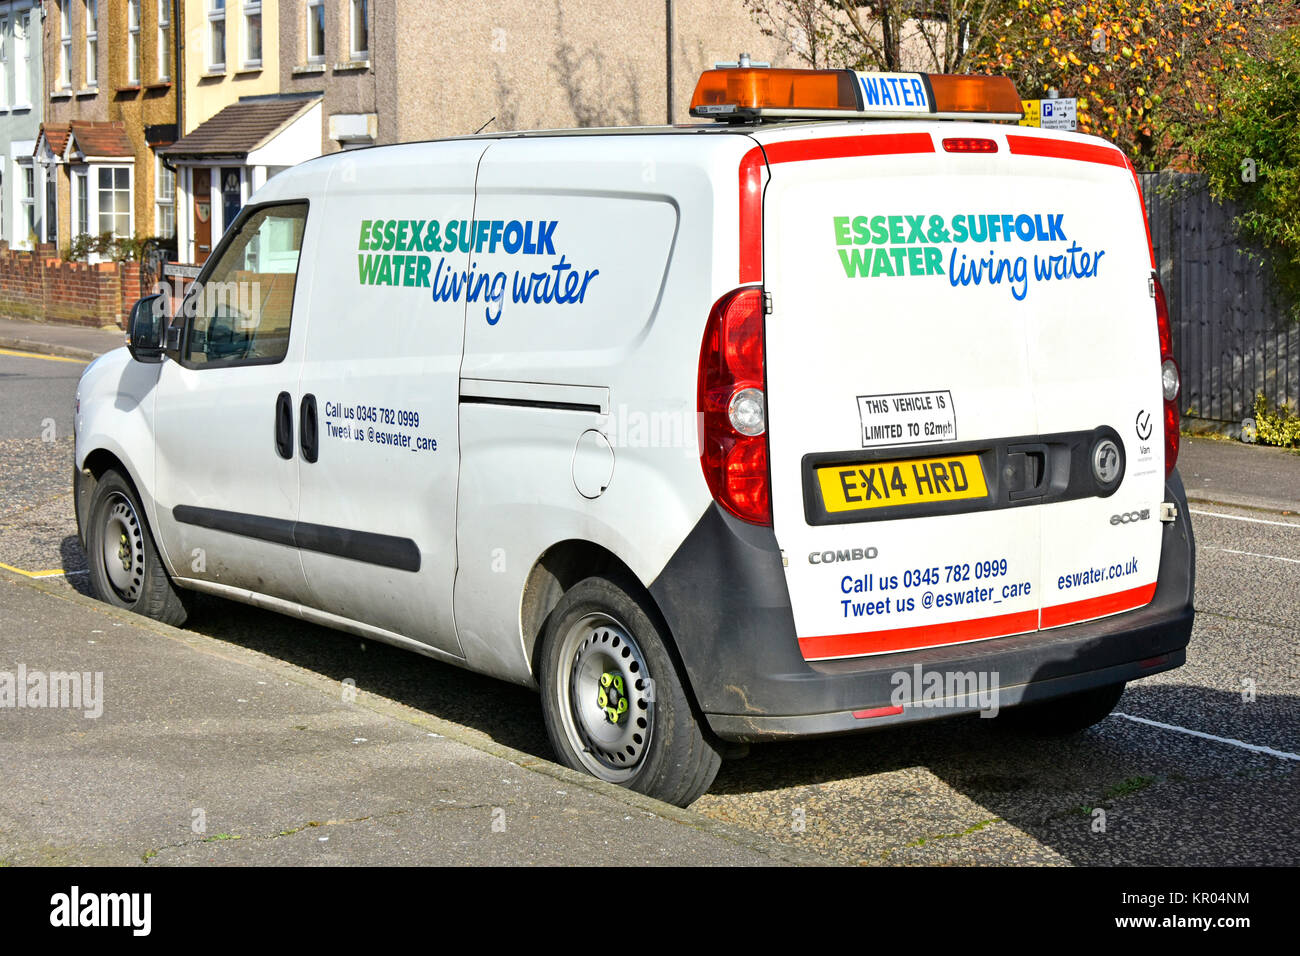 Essex and Suffolk water supply company part of Northumbrian Water Group Vauxhall Combo van parked in residential - Stock Image